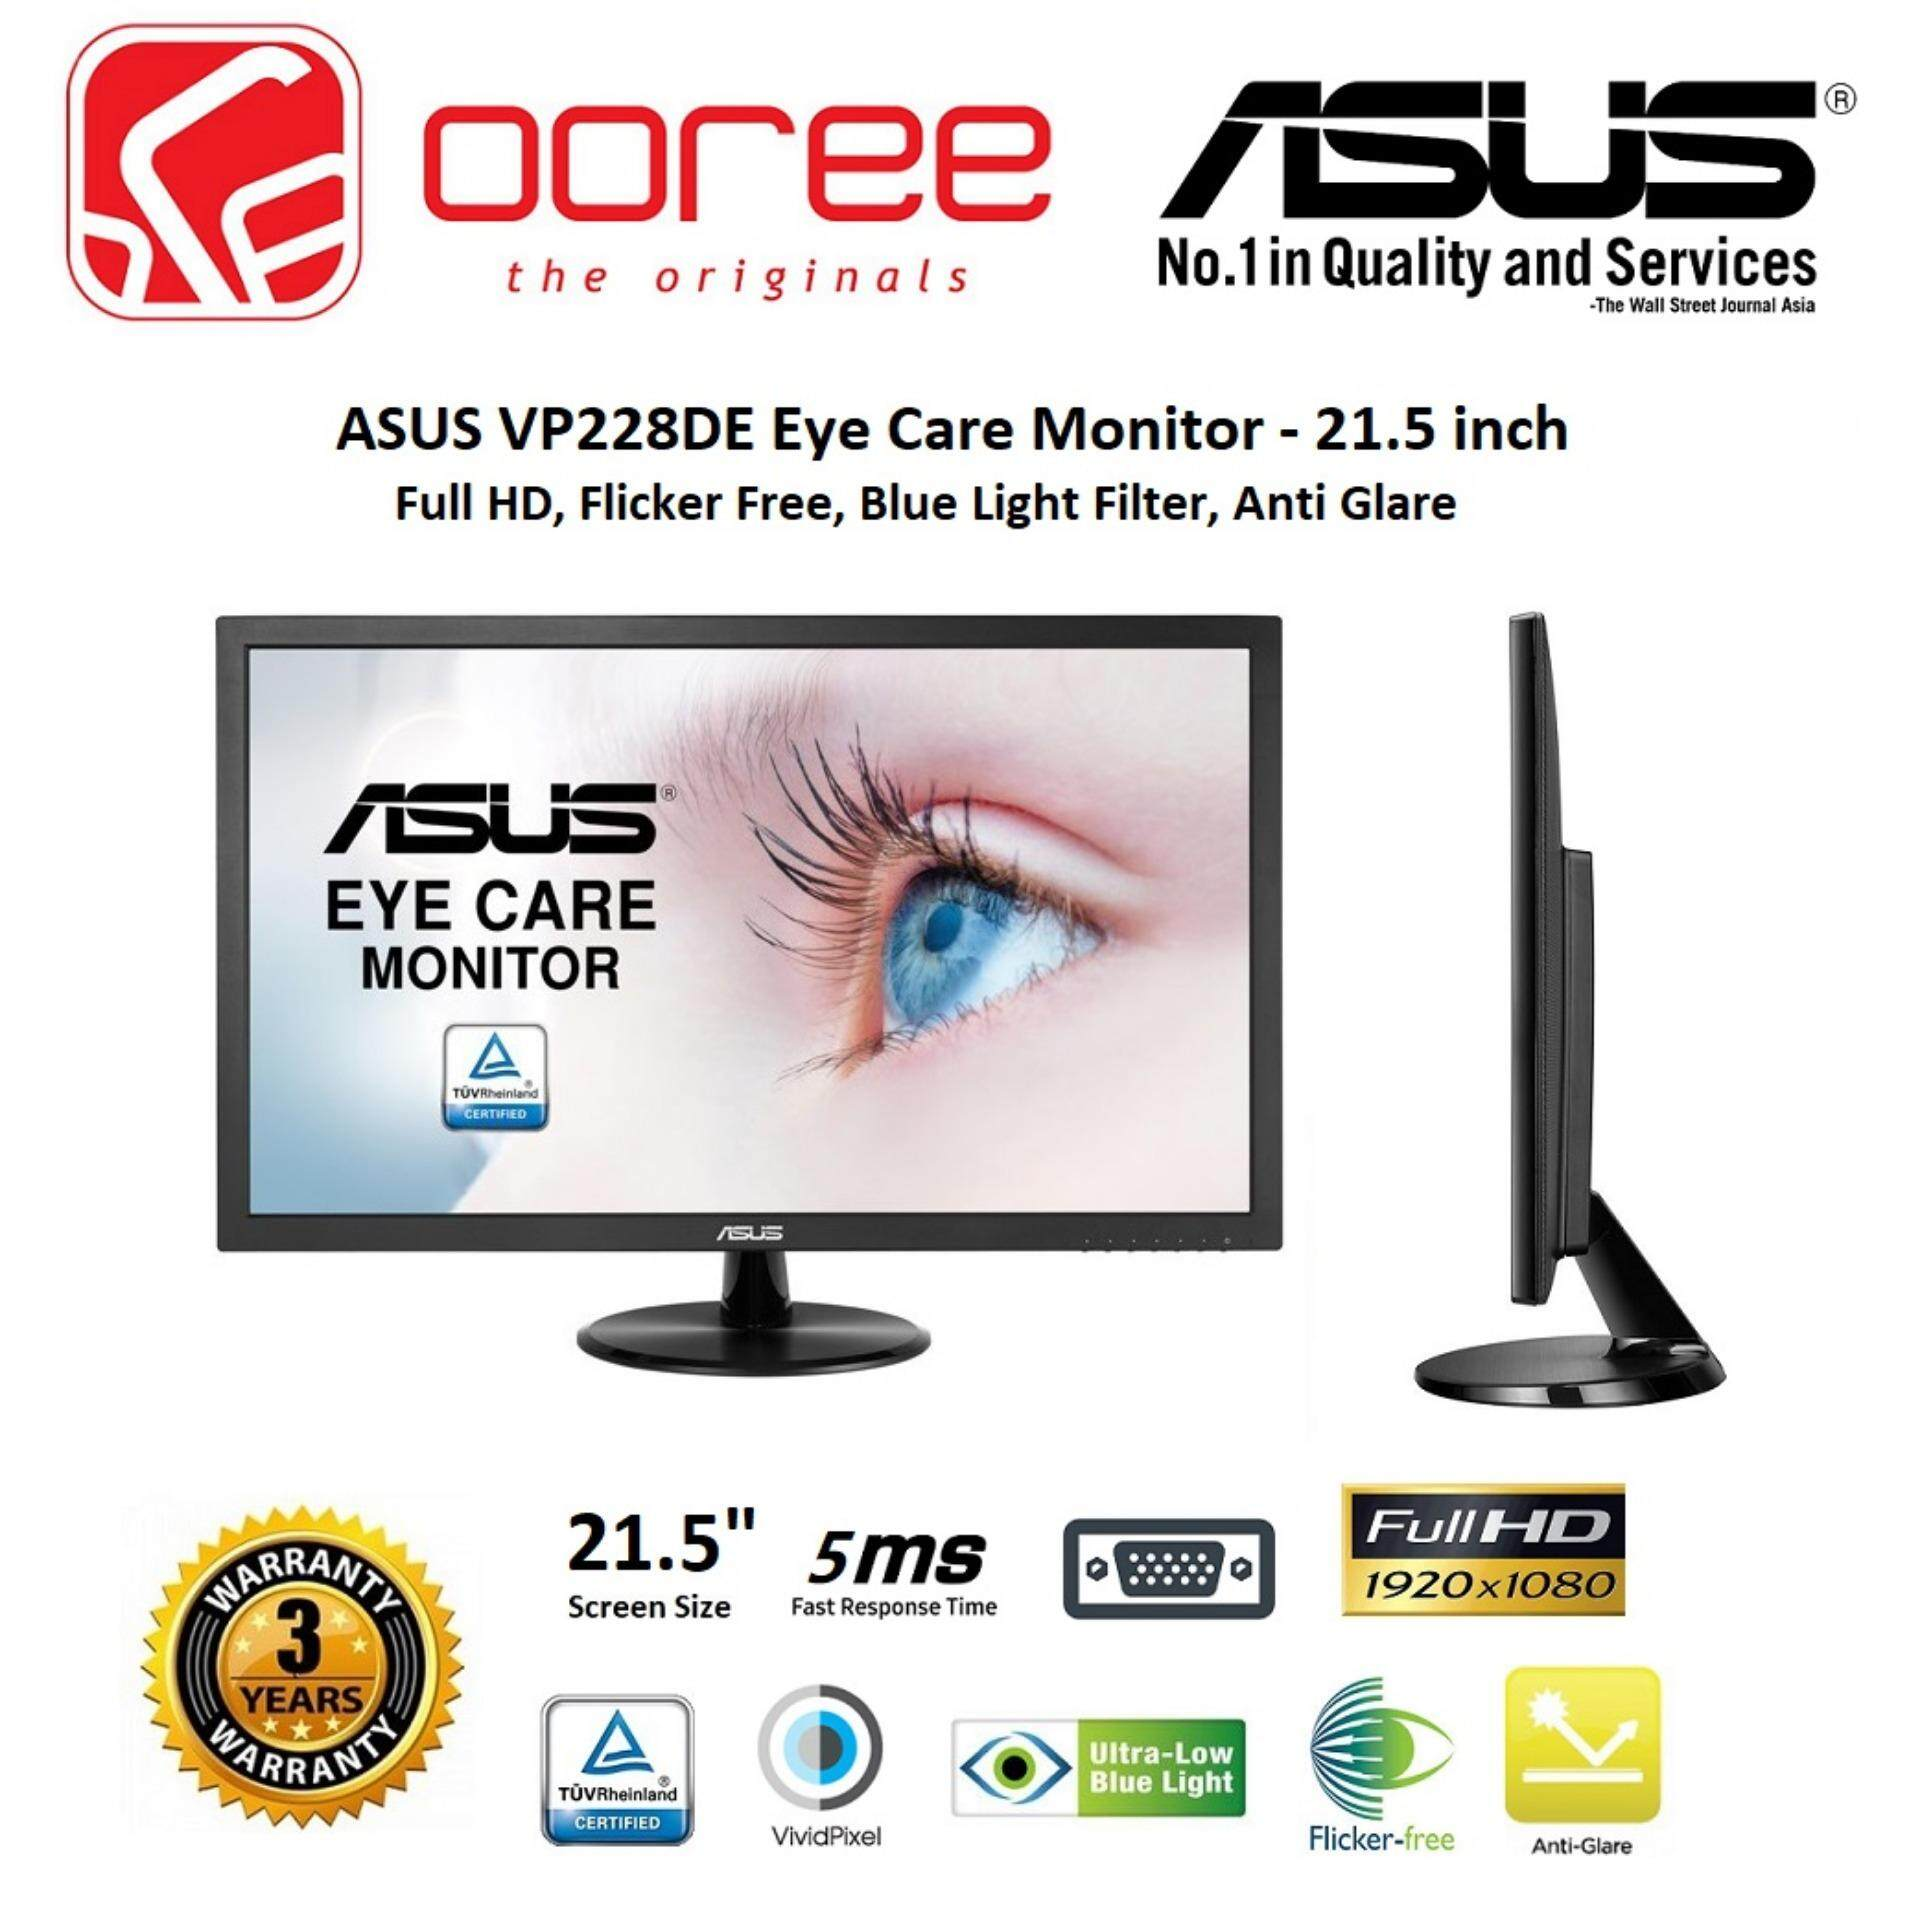 GENUINE ASUS LED FLAT HD 21.5 VS228DE LCD MONITOR (5MS/VGA/VESA) BLACK Malaysia